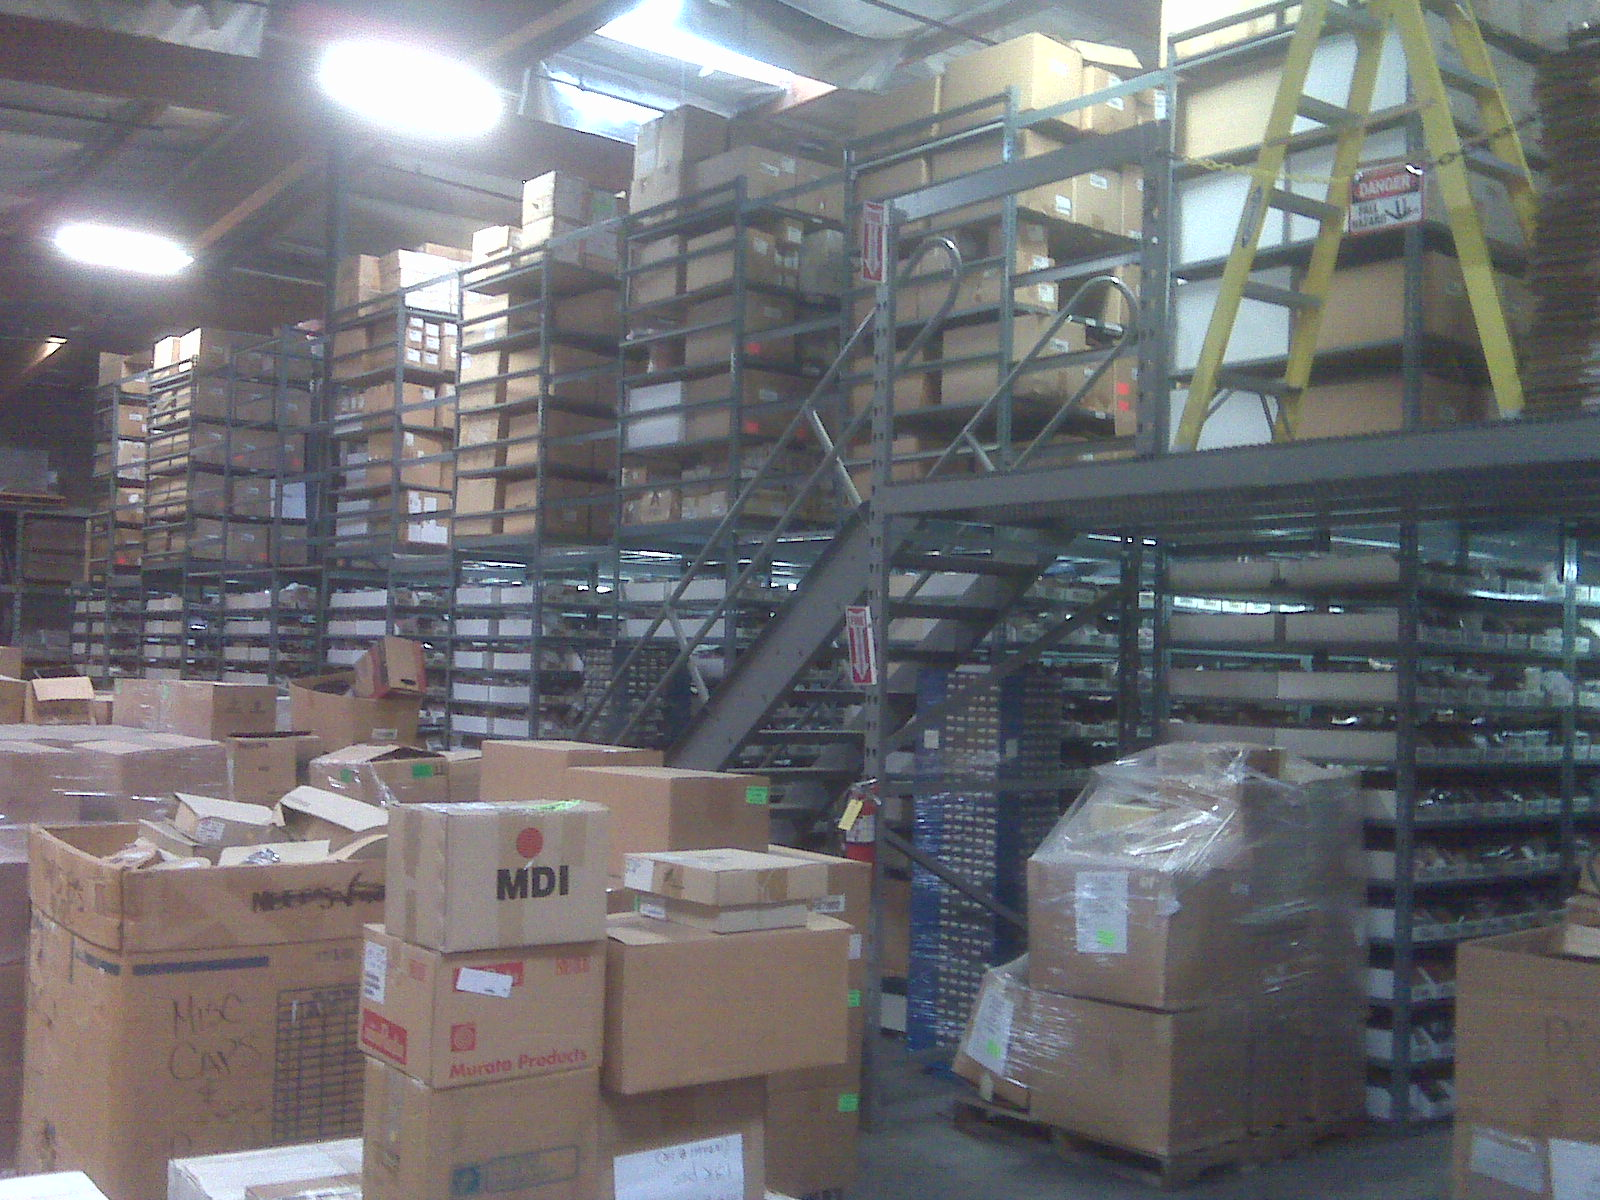 A Amp A Boltless Rack And Shelving Warehouse Storage Solutions